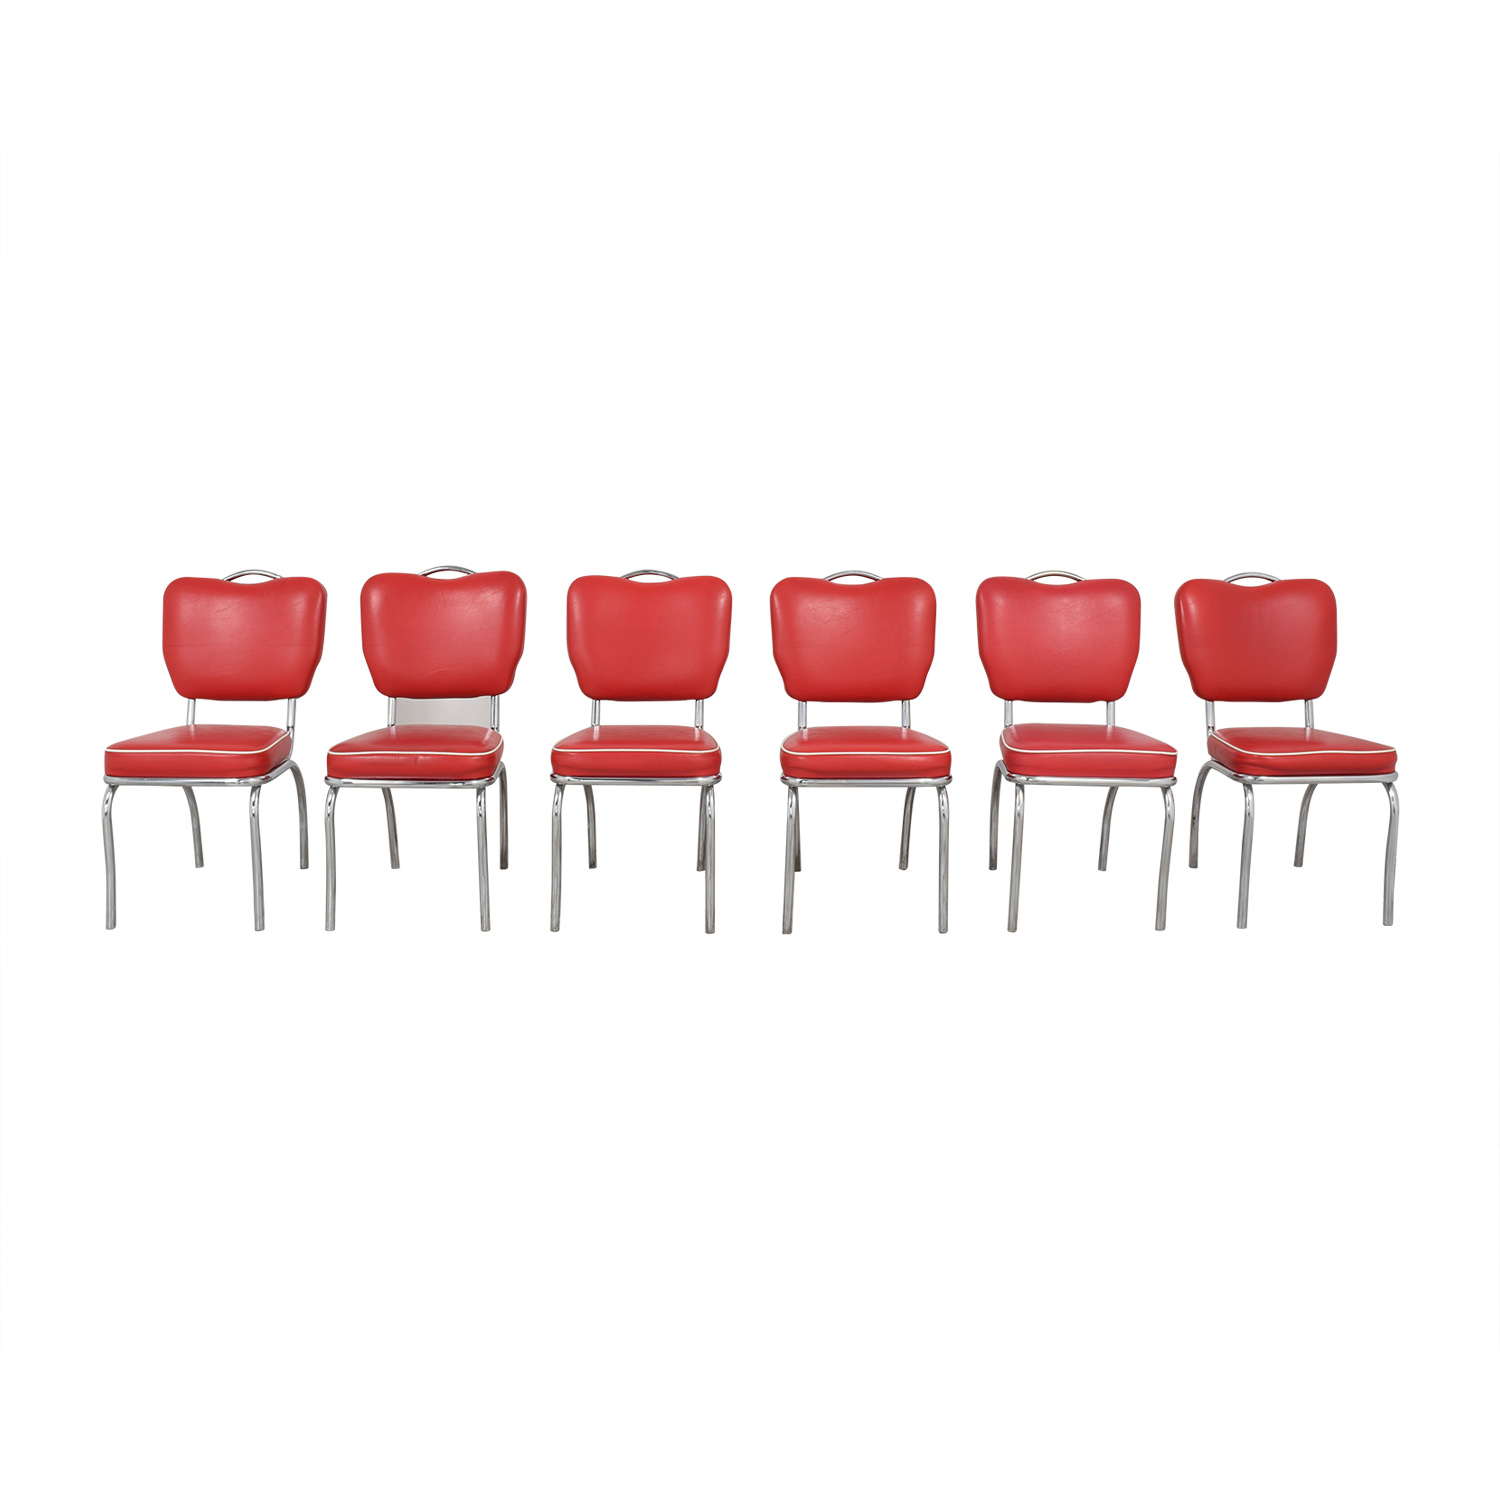 shop Stoneville Furniture Retro Diner Chairs Stoneville Furniture Company Chairs